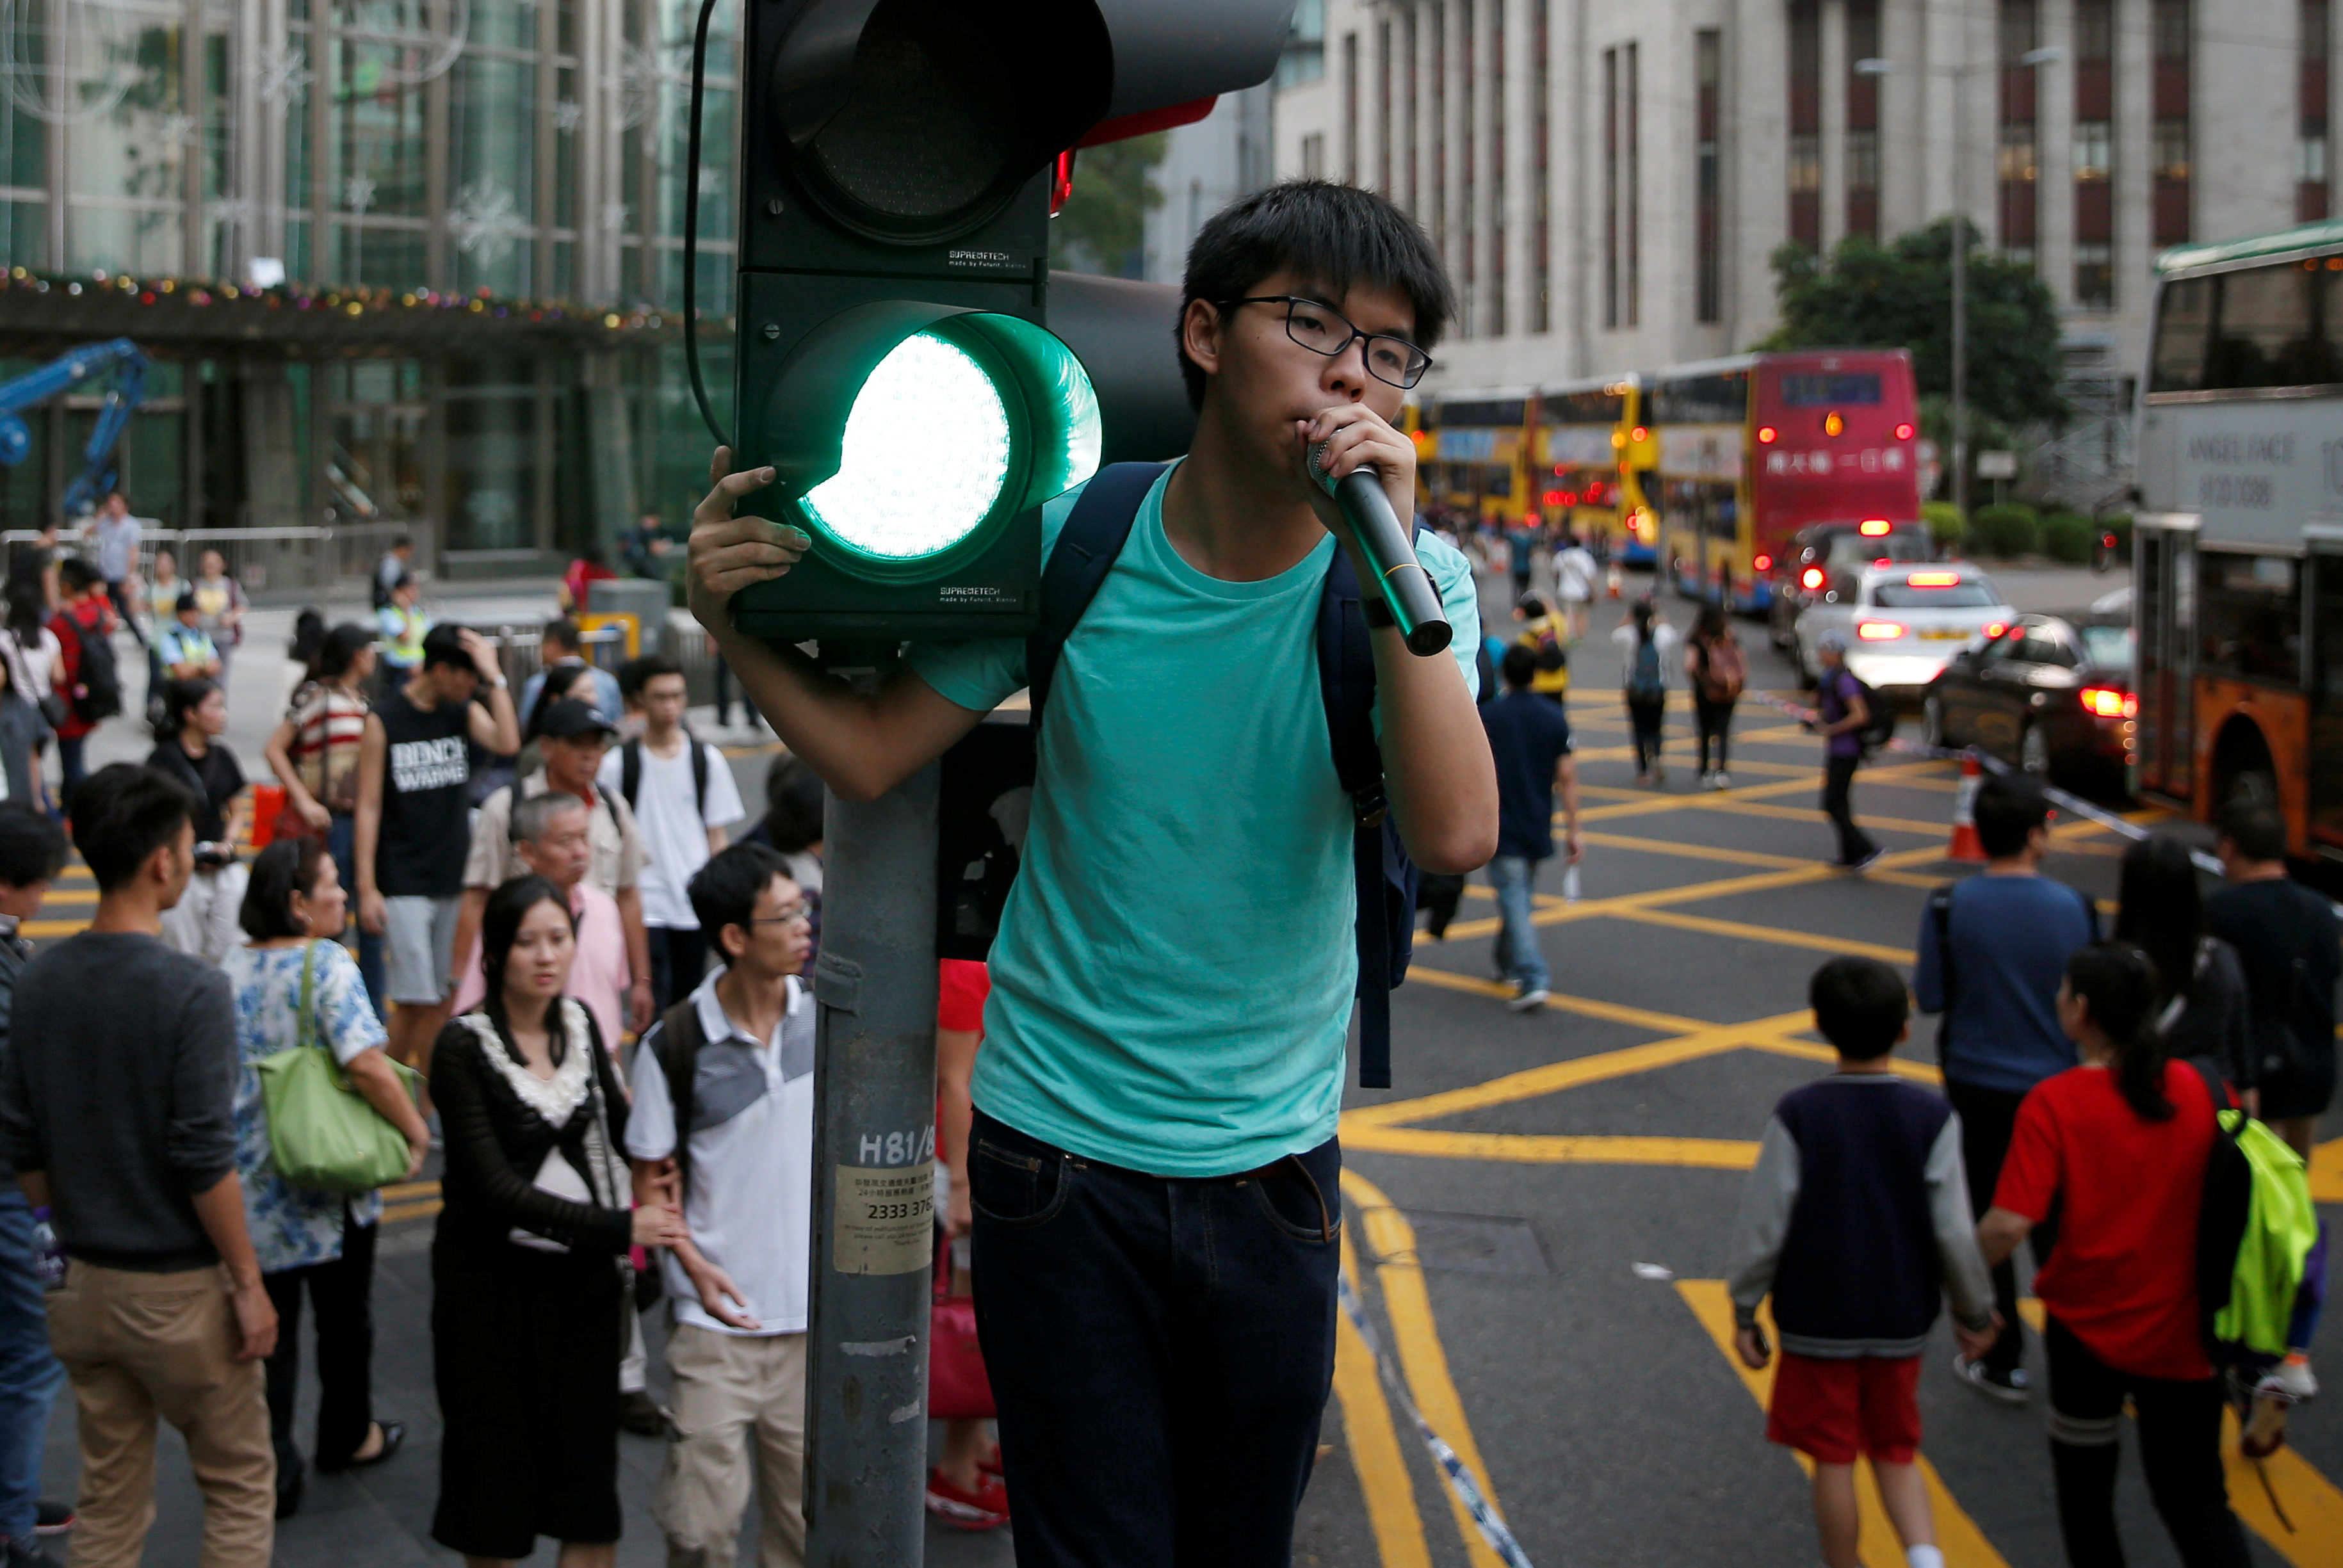 Pro-democracy activist Joshua Wong shouts during a protest against what they call Beijing's interference over local politics and the rule of law a day before China's parliament is expected to announce their interpretation of the Basic Law in light of two pro independence lawmakers' oath-taking controversy in Hong Kong, China November 6, 2016. REUTERS/Tyrone Siu - RTX2S5DE